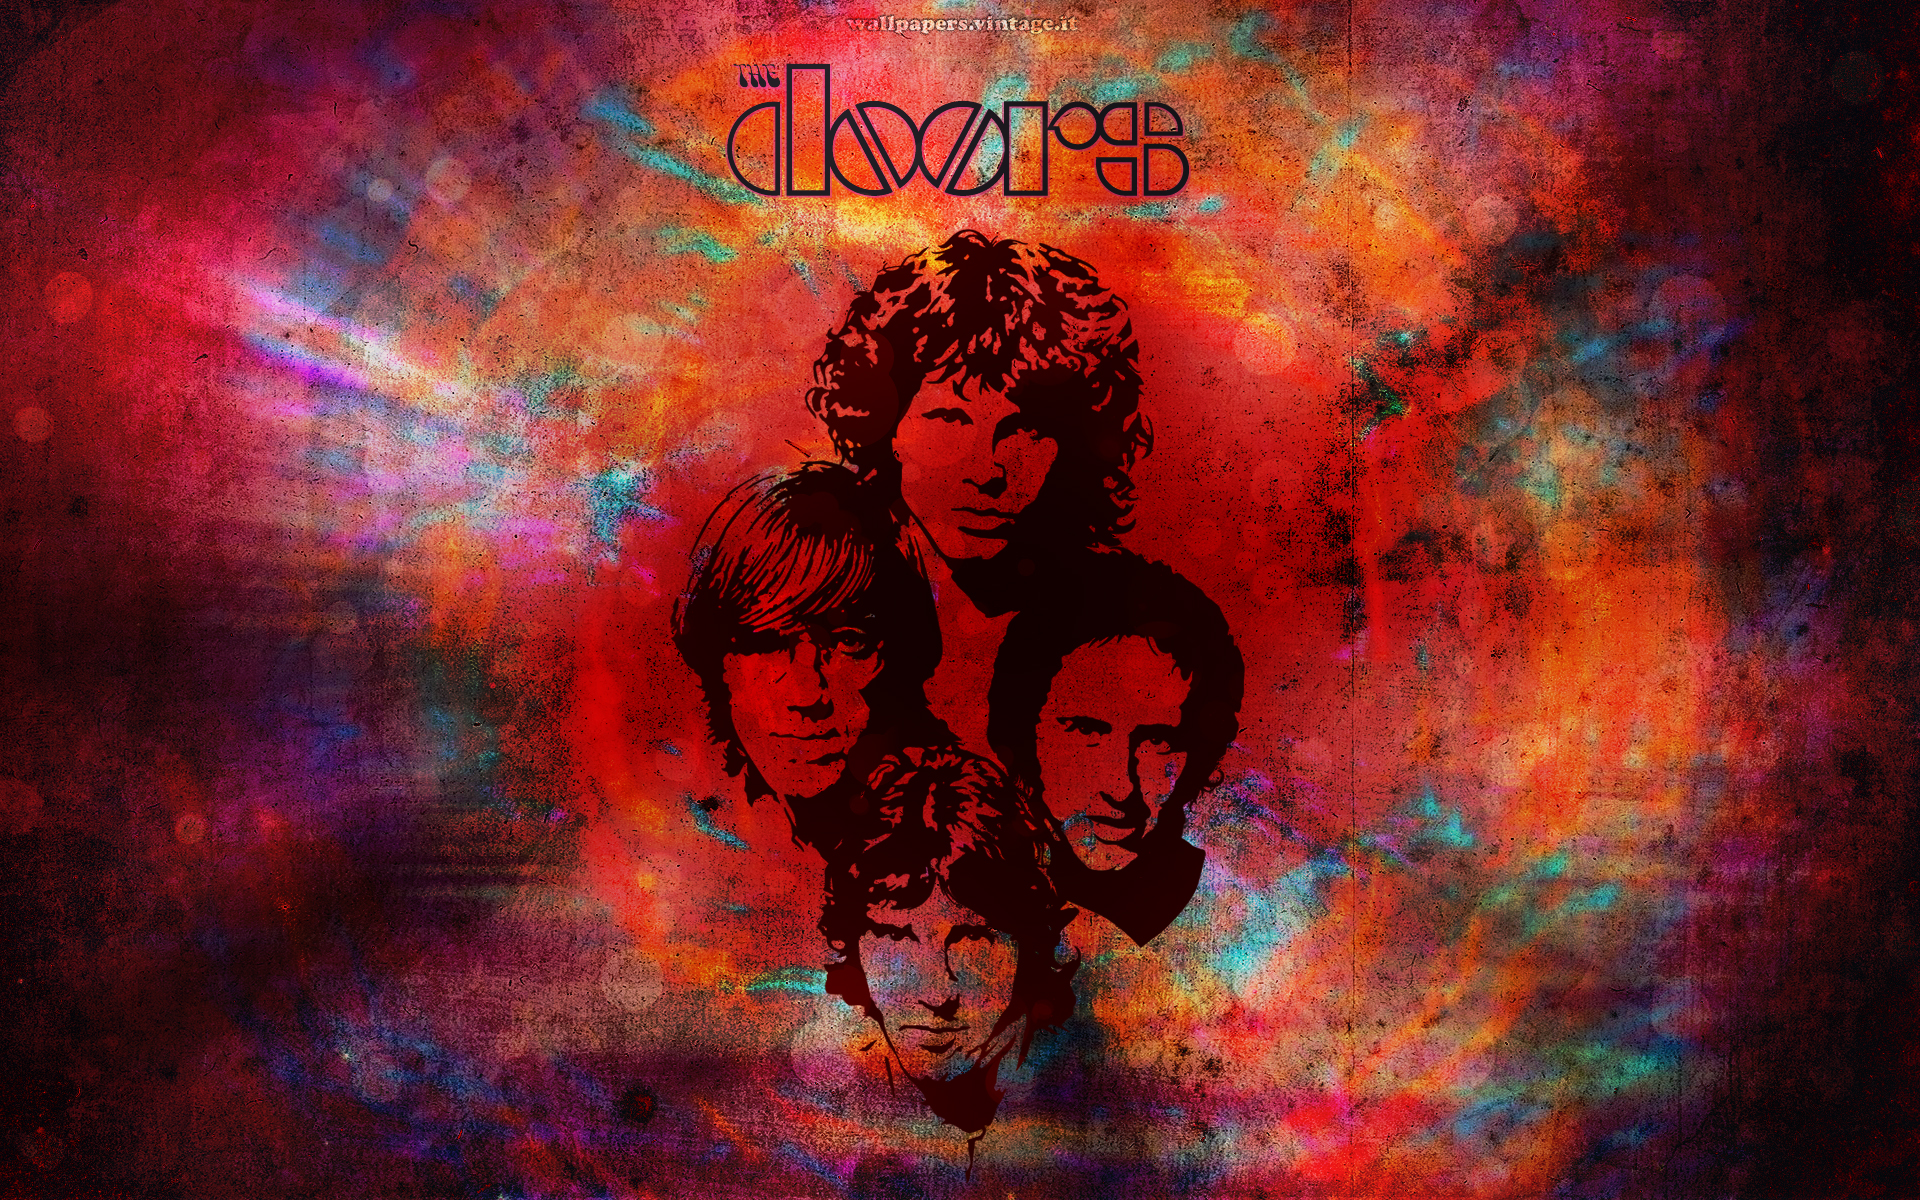 The doors wallpaper free desktop hd ipad iphone wallpapers for Wallpaper wallpaper wallpaper